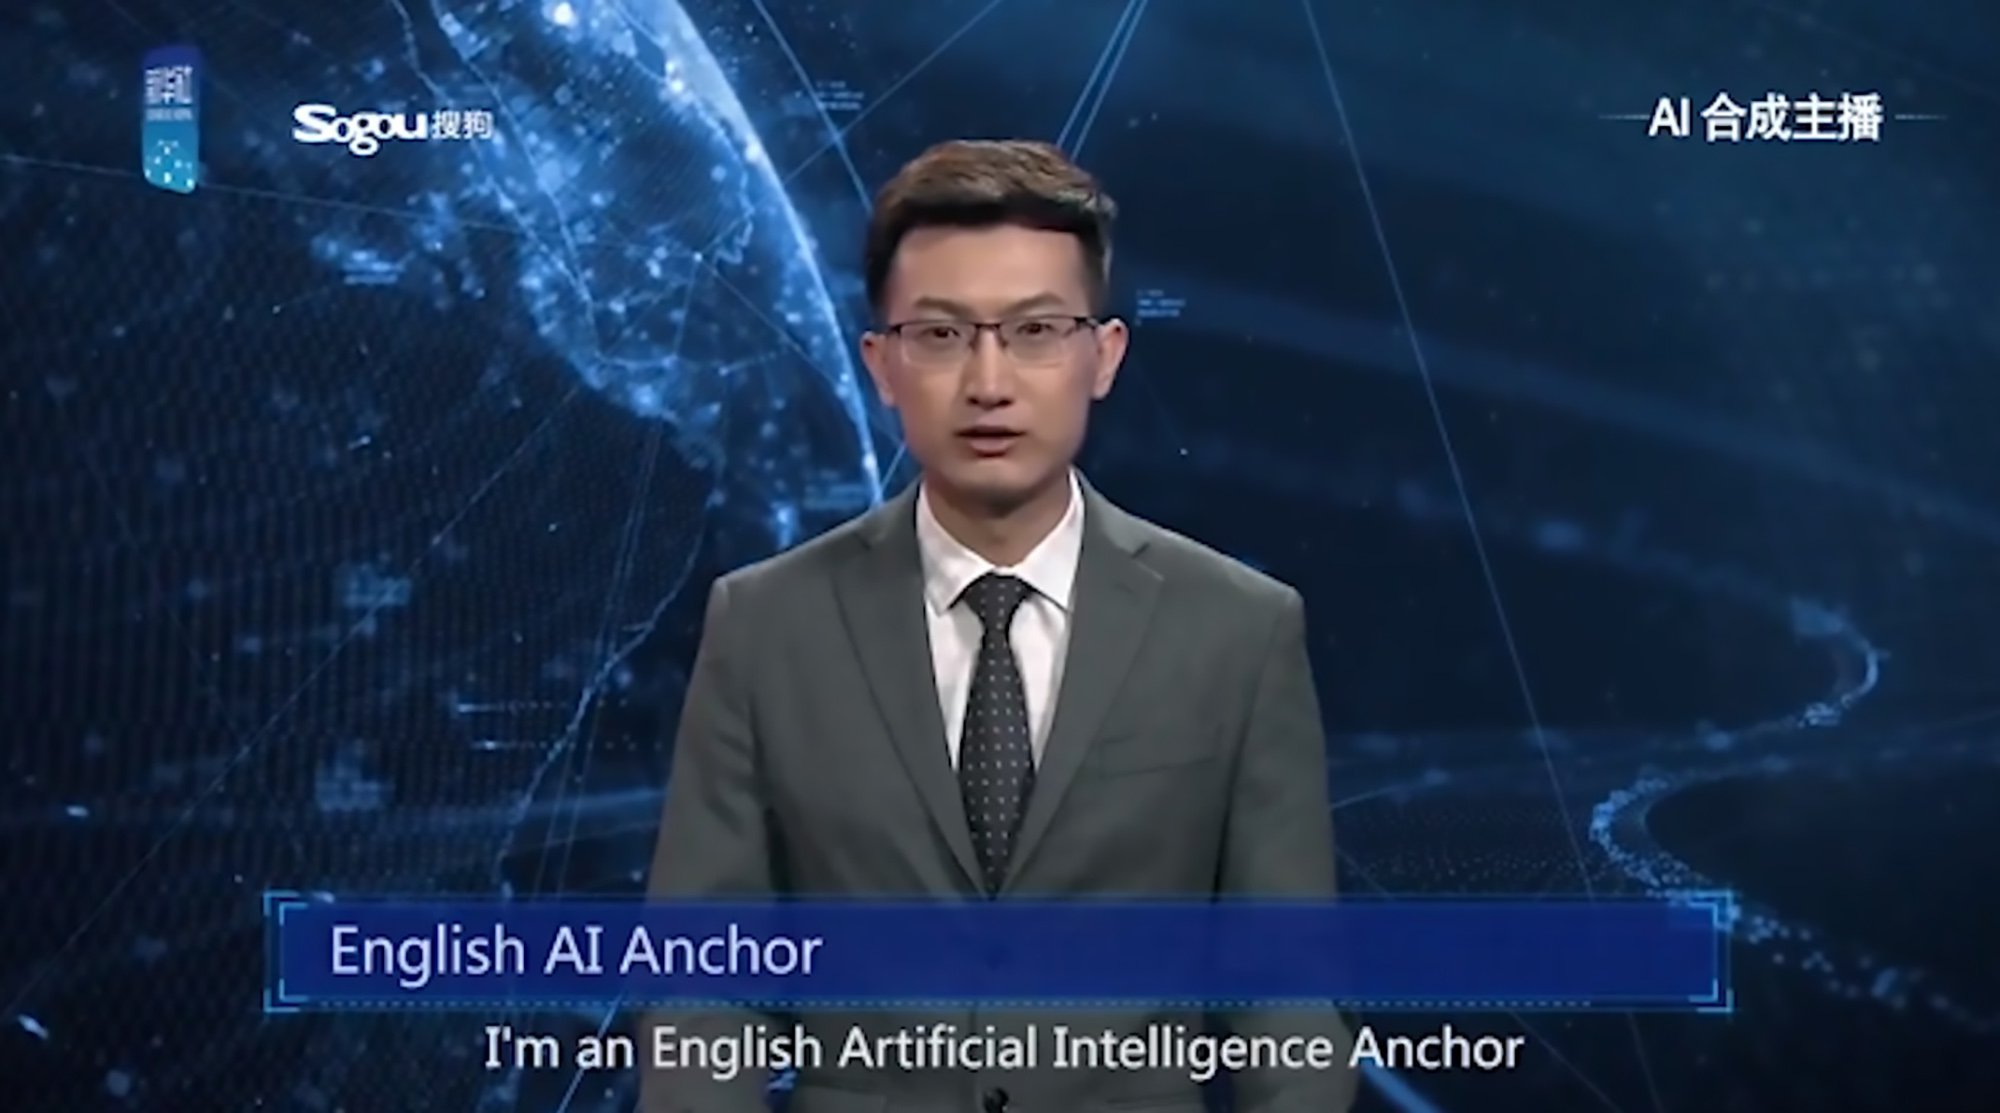 """Pic Shows: The English AI Anchor whose voice and appearance were modeled after Zhang Zhao, a real anchor from Xinhua; This is the world???s first Artificial Intelligence anchor reading the news in English on the state-owned Xinhua network in China. The unnamed presenter is based on real-life Xinhua news anchor Zhang Zhao and uses the latest in Artificial Intelligence (AI) technology to carry out the role. The ???man??? made his debut at the 2018 World Internet Conference taking place in the city of Wuzhen located in the eastern Chinese province of Zhejiang. According to reports, the AI anchor """"learns"""" from watching videos of broadcasters and can read out the news as """"naturally"""" as a real-life TV presenter. He was developed by the Xinhua News Agency, China???s official state-run network, and the public search engine developer Sogou. Meanwhile, Xinhua claims that the AI presenter has become a fully-fledged member of its news team and is available to work 24 hours a day. The network plans on using the AI anchor on its official website and associated social network accounts. The company even said that the artificial presenter will reduce news production costs and improve efficiency. In the video clip, the presenter says: """"Hello everyone, I am an English Artificial Intelligence Anchor. This is my very first day in Xinhua News Agency. """"My voice and appearance are modelled on Zhang Zhao, a real anchor with Xinhua."""" He then goes on to explain that rolling news stories can be """"fed"""" to him as they develop in real time, whatever the hour."""